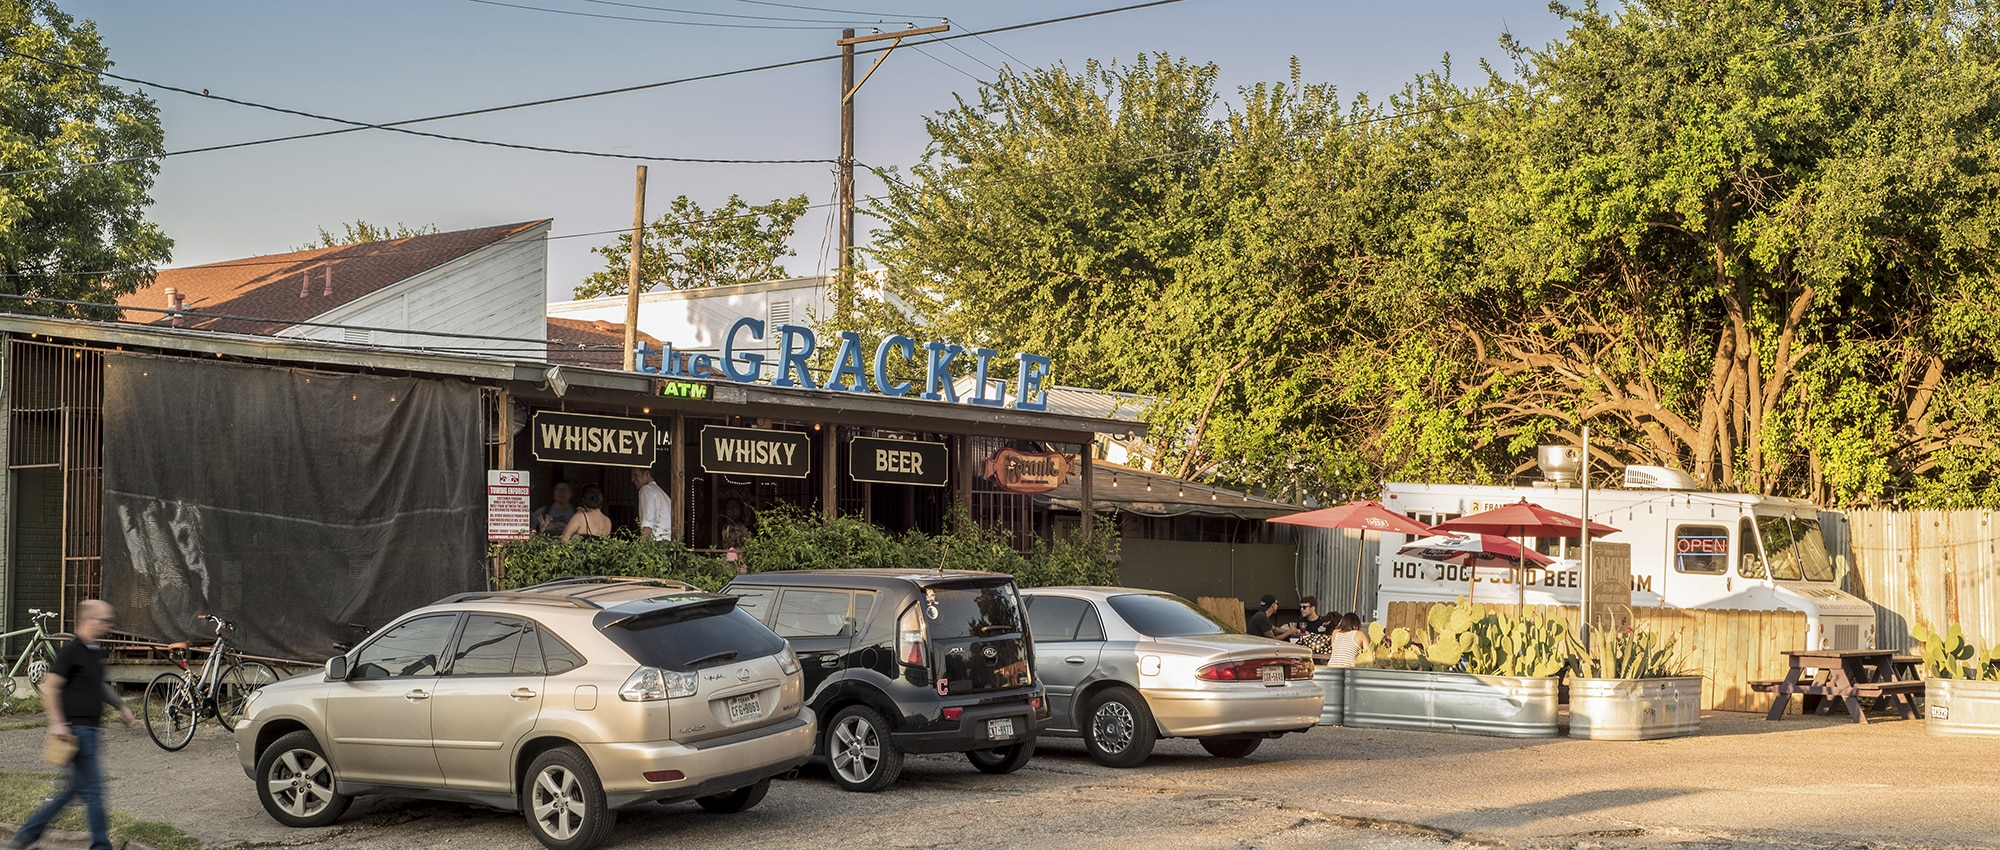 The Grackle in east Austin, Texas